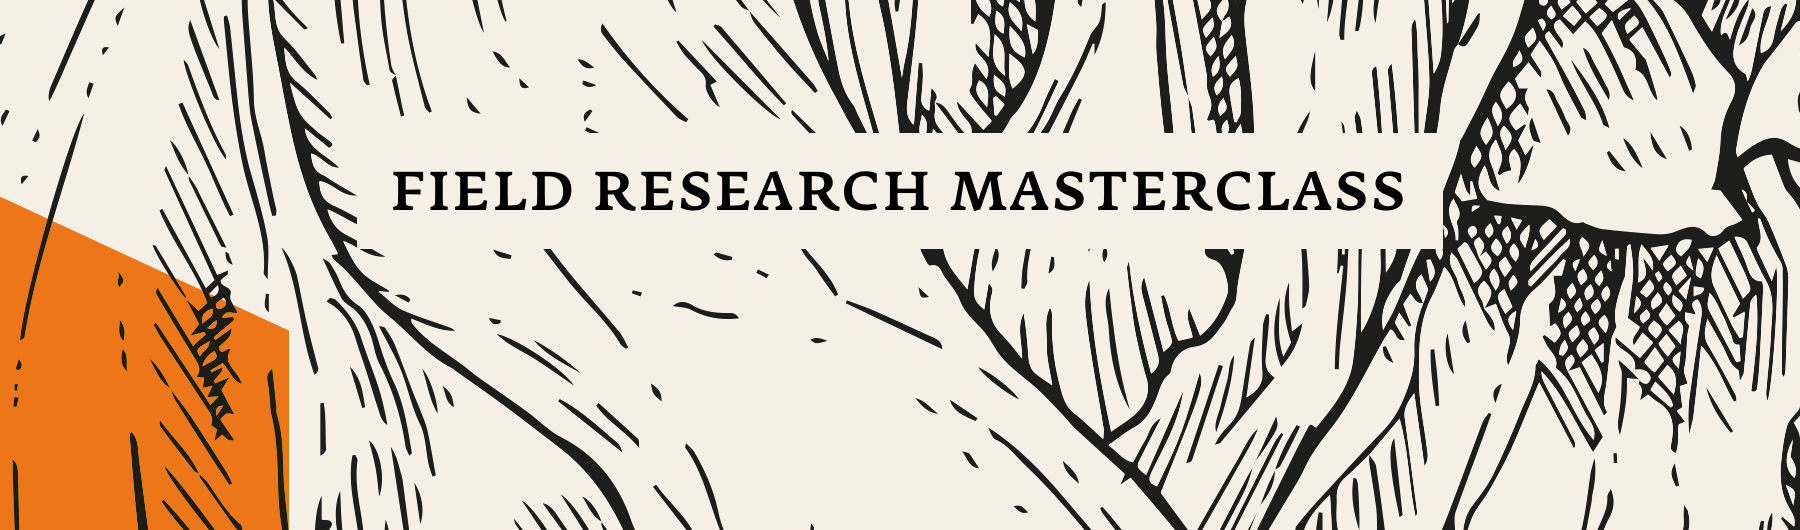 August 29, Field Research Masterclass, NYC